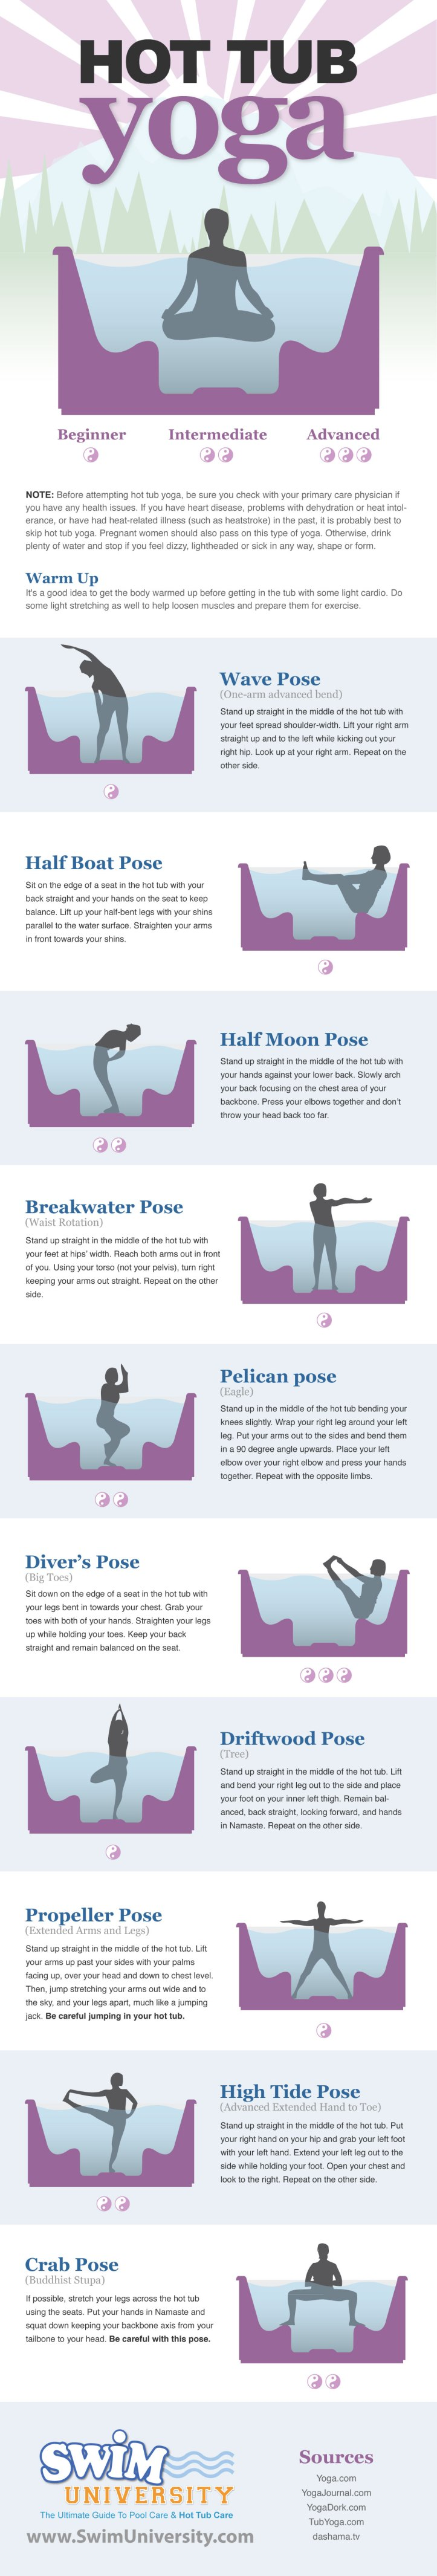 hot-tub-yoga